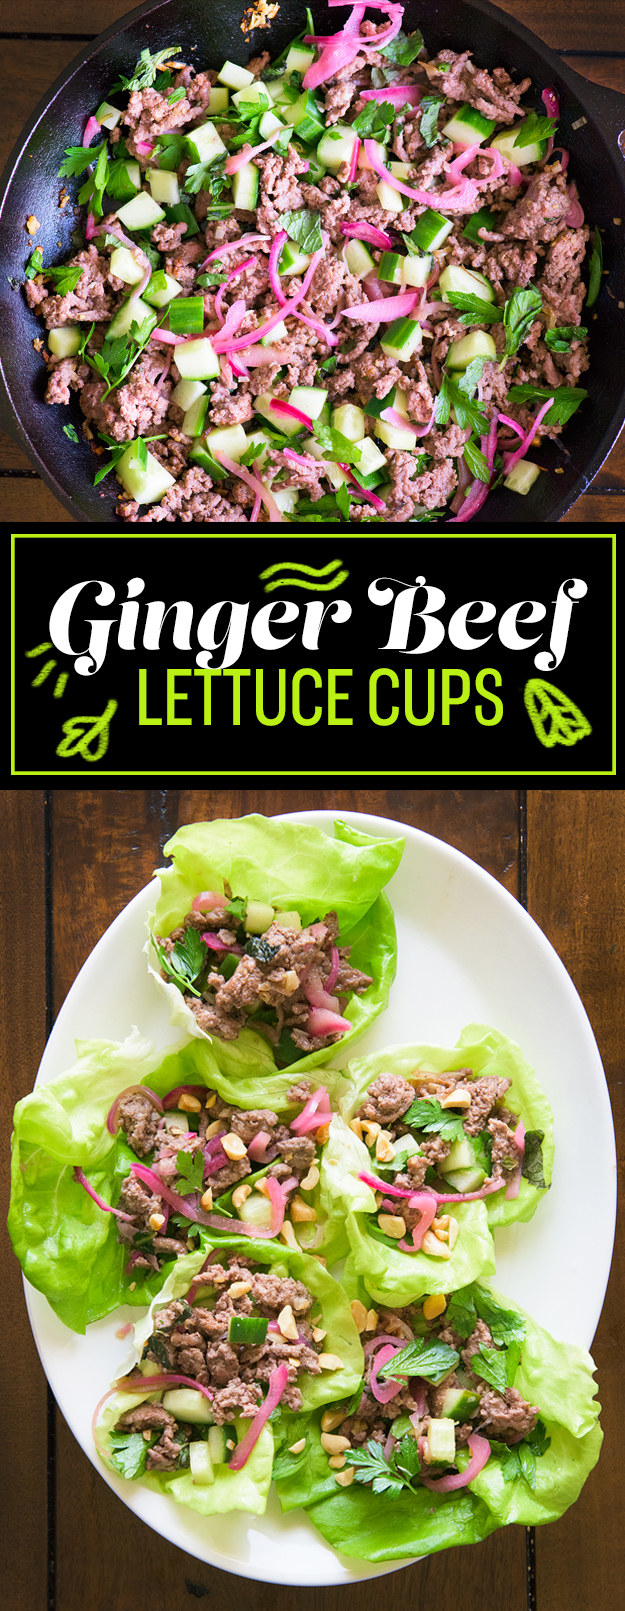 MONDAY: Ginger Beef Lettuce Cups